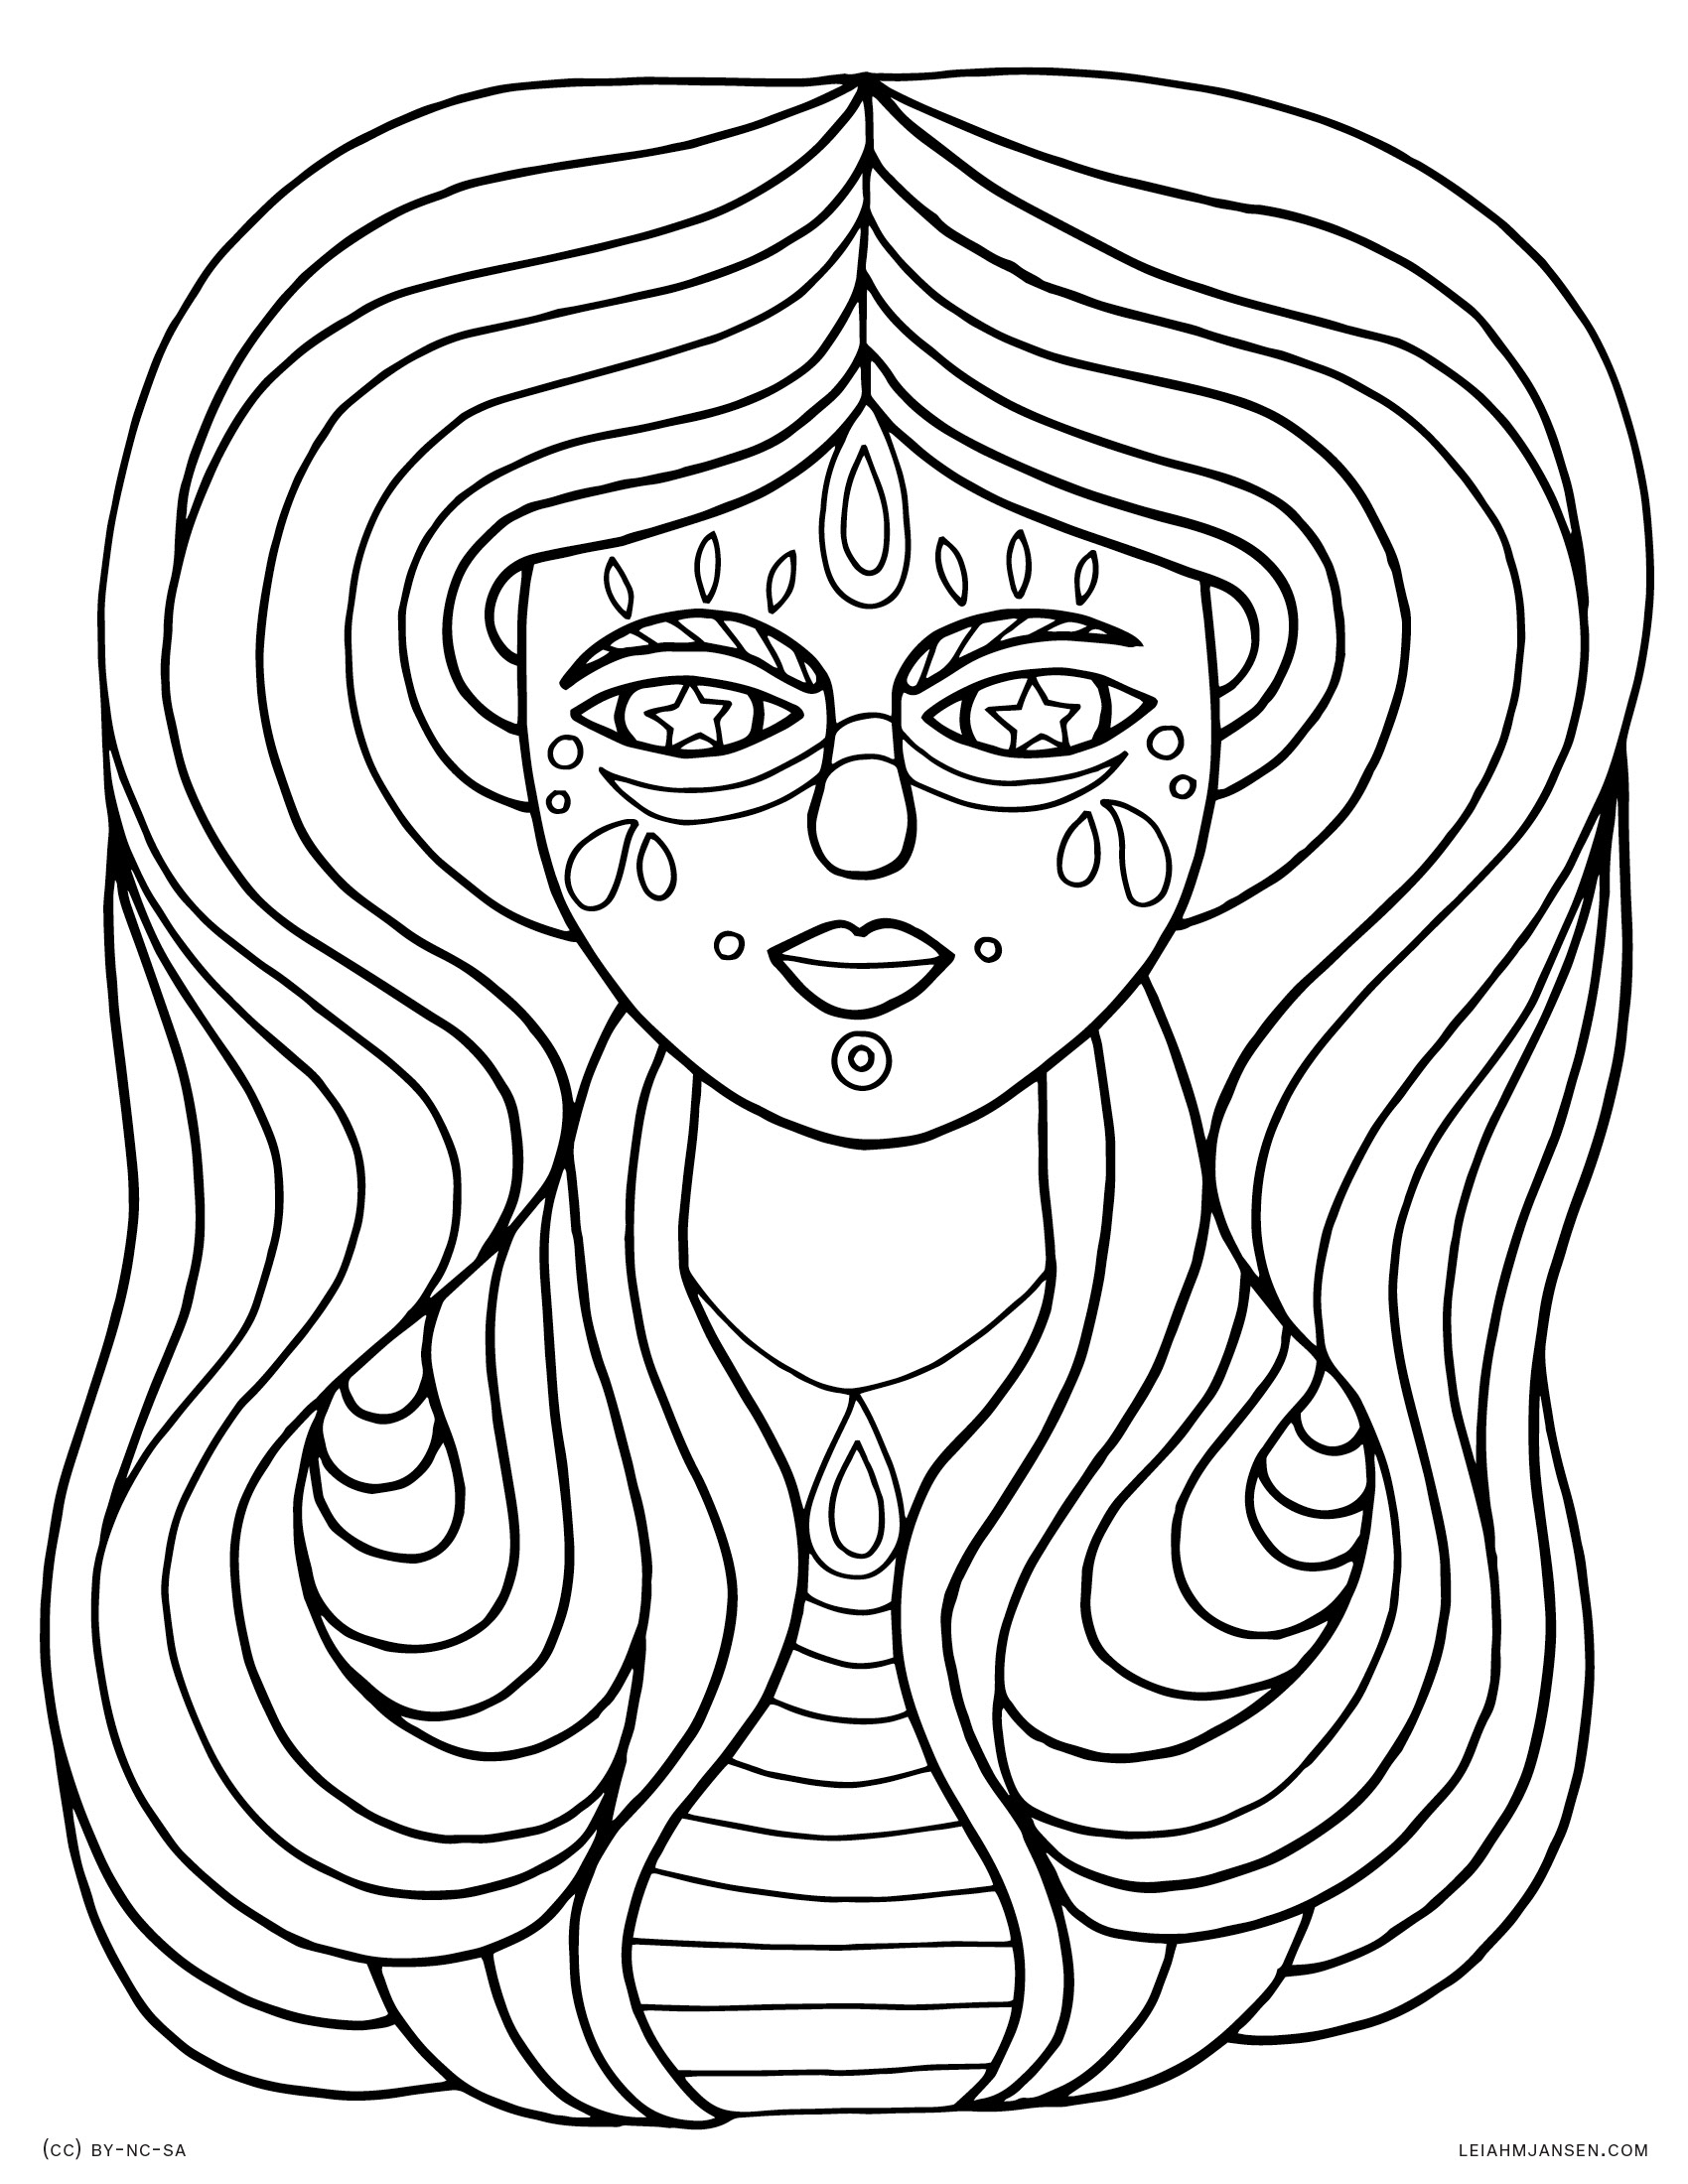 Flowy Hair Woman - Festi Magick Hippie Girl - Free Printable Coloring Page for Adults and Kids, by leiahmjansen.com